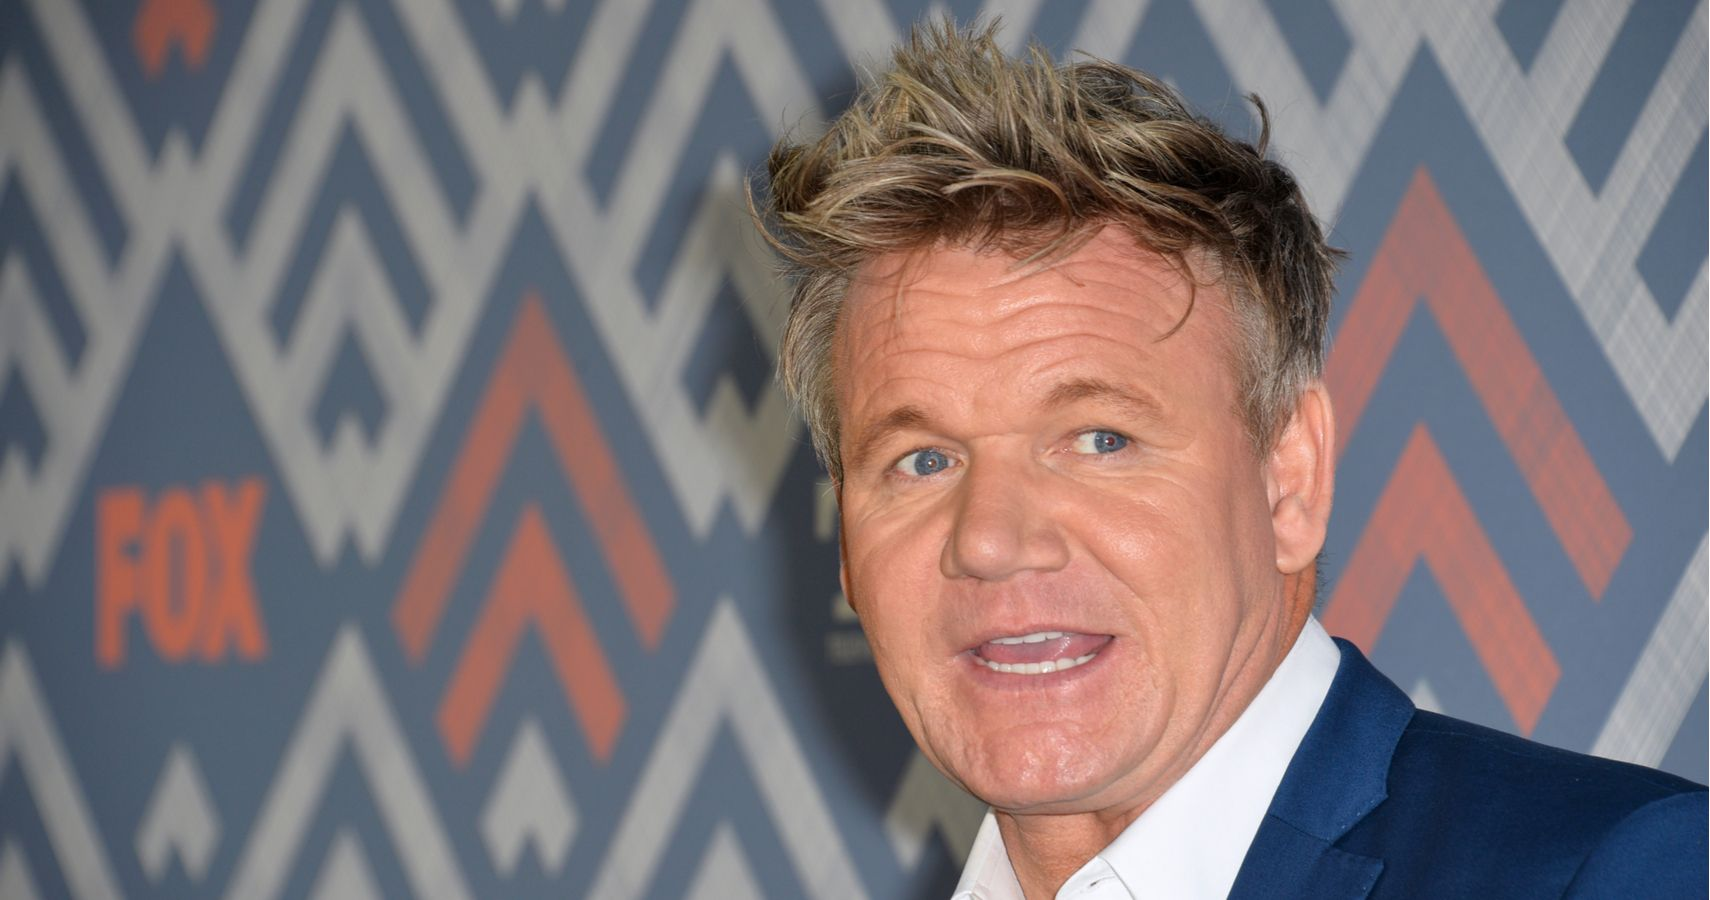 Gordon Ramsay Signs A $150 Million Deal With Fox Production